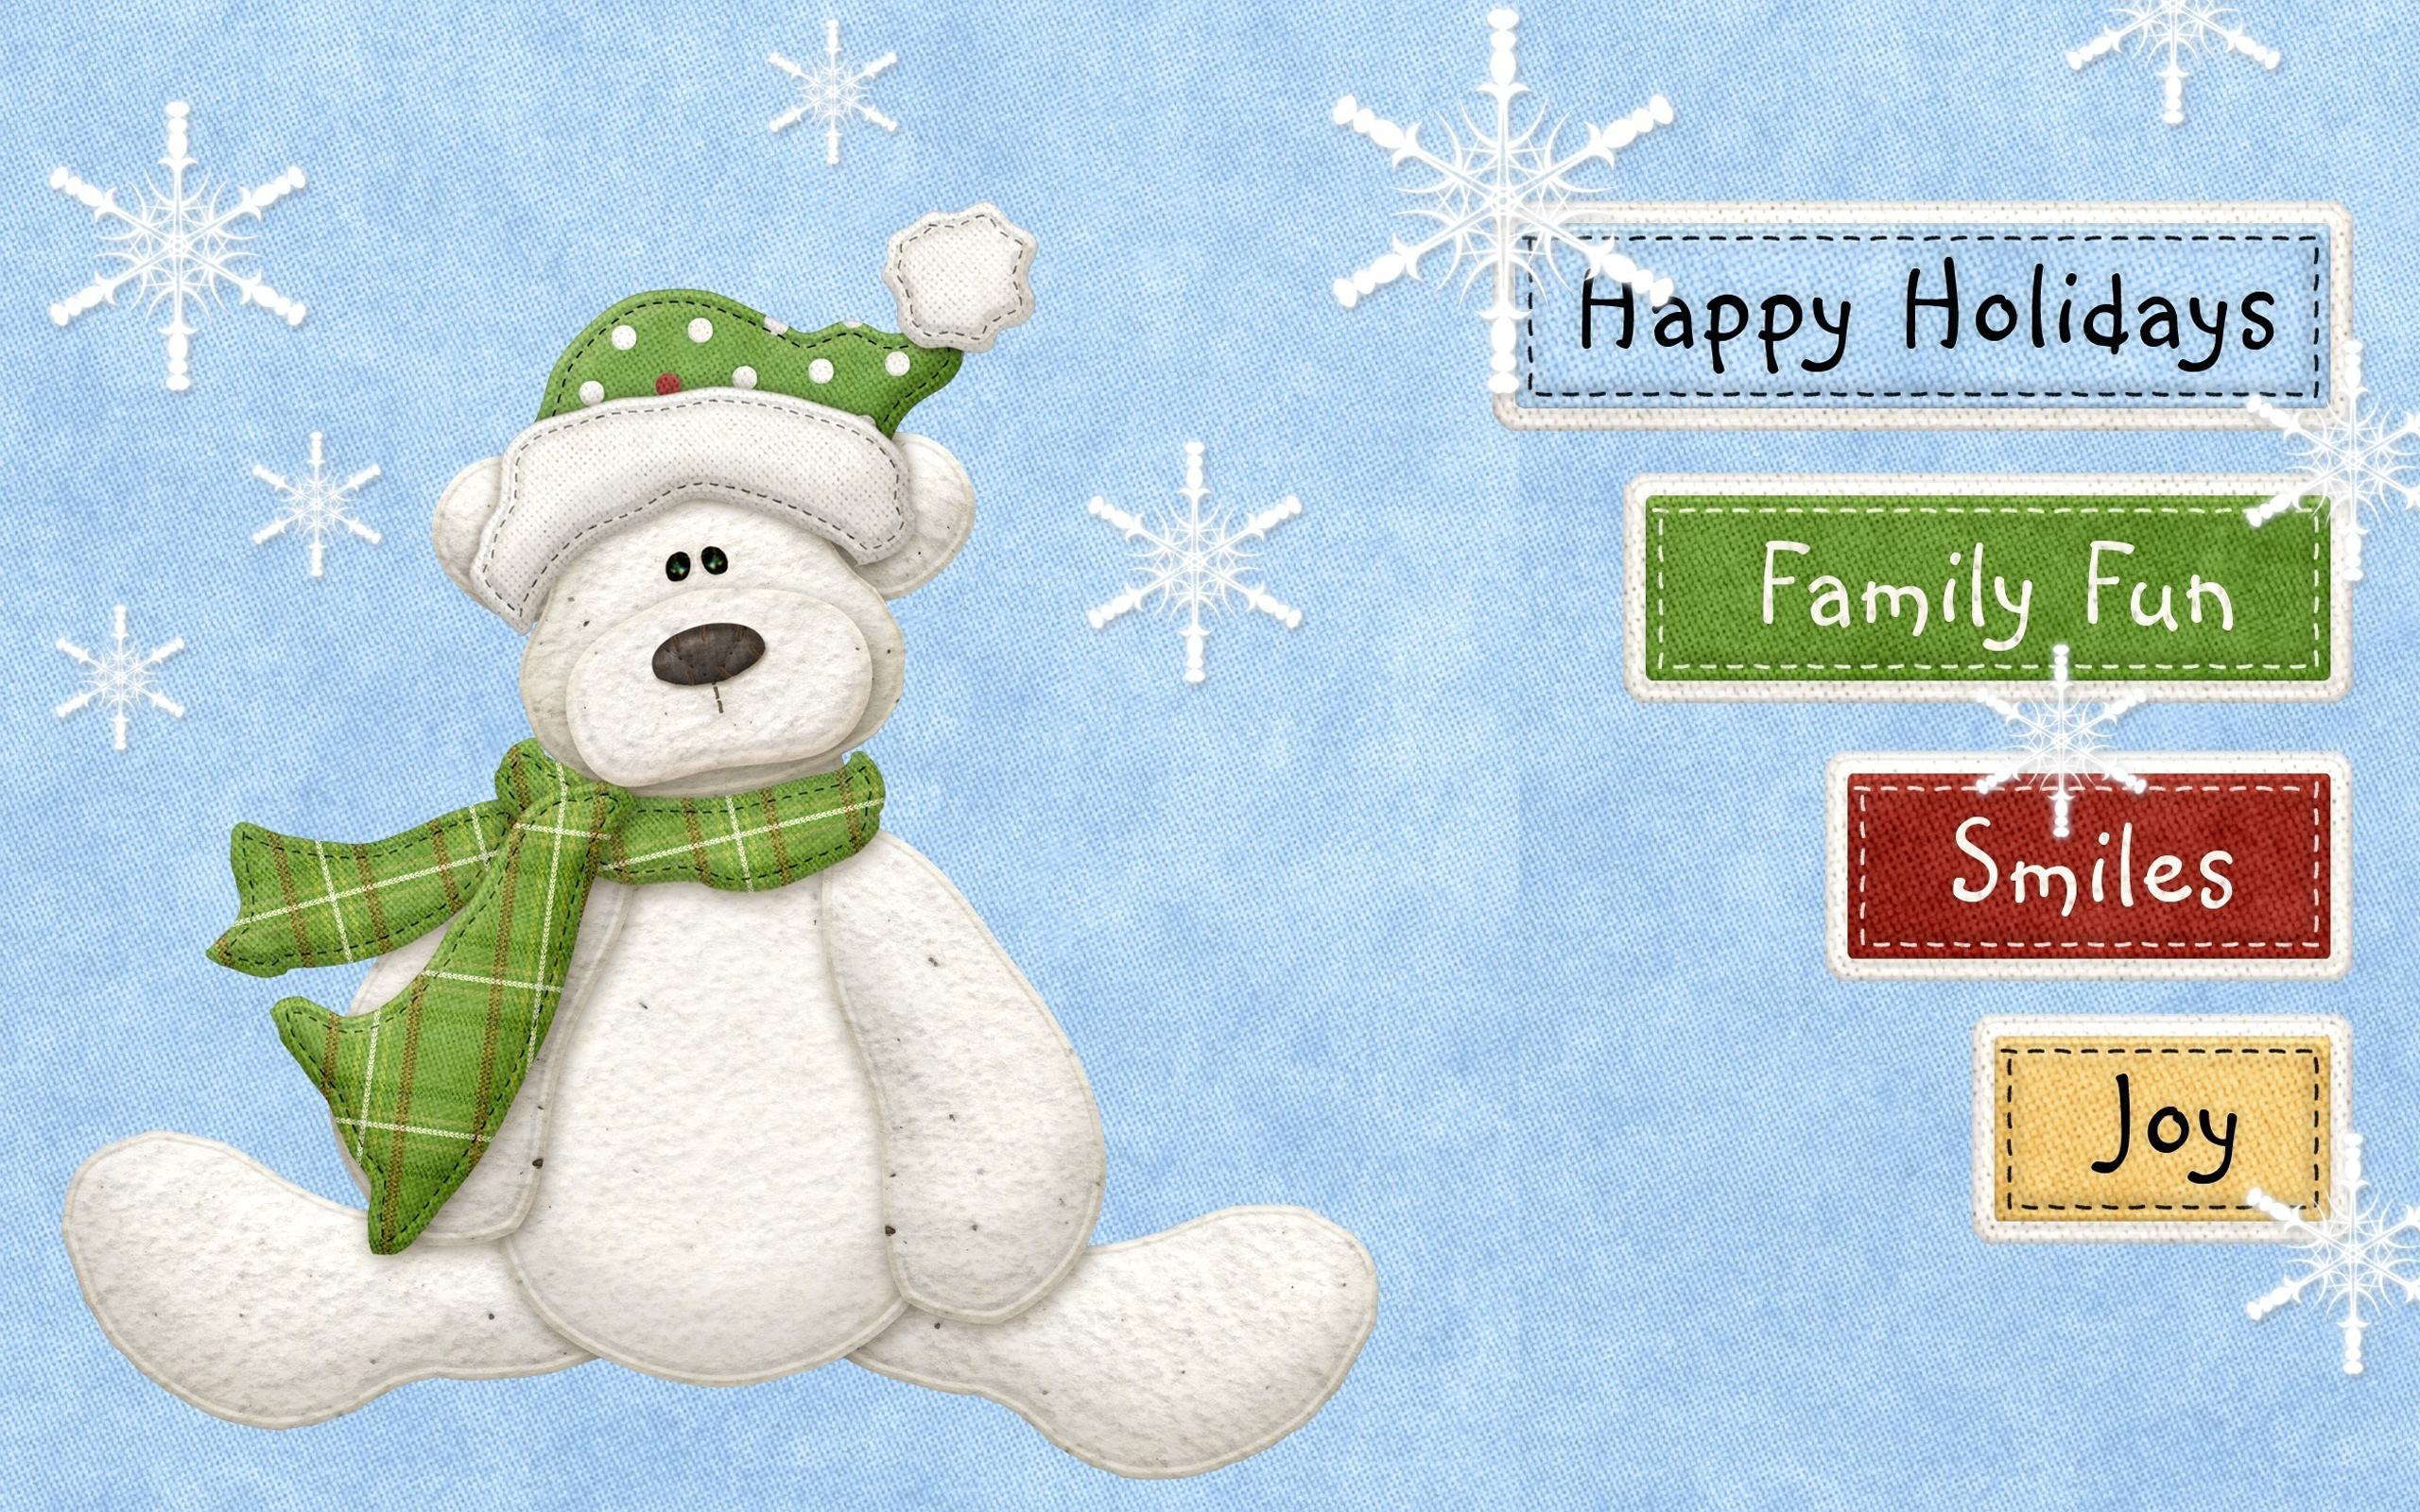 Happy Holidays Fun Joy wallpaper